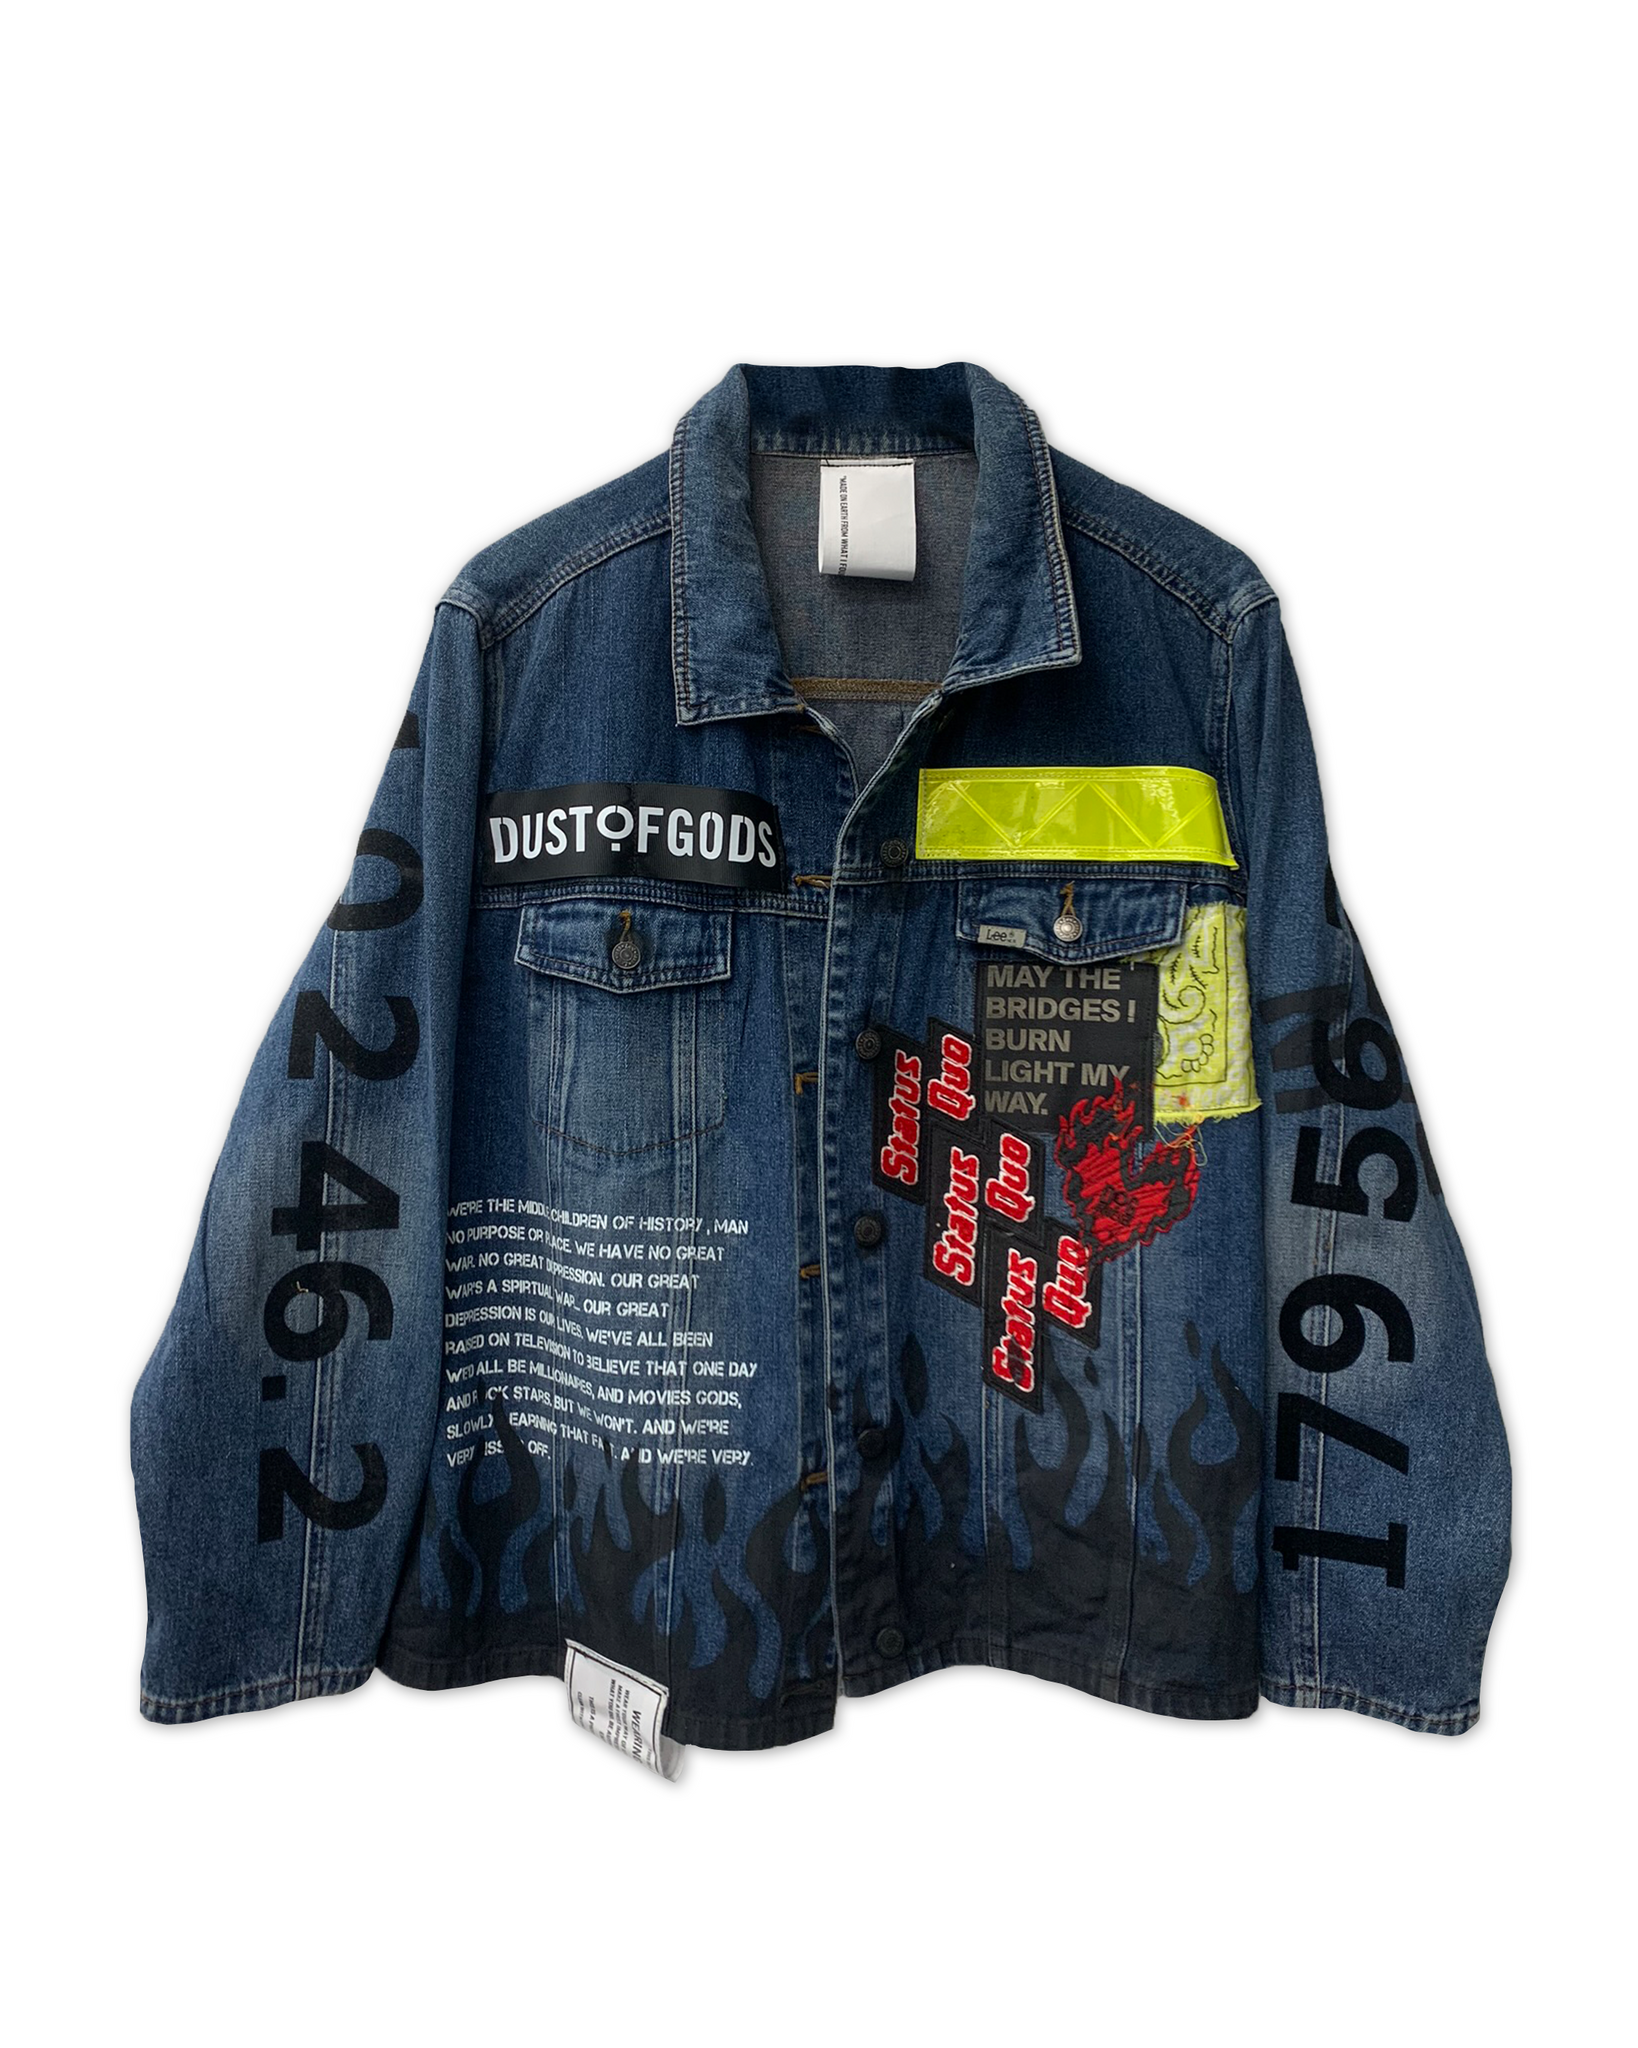 6TH EDITION SEEK WHAT SETS YOUR SOUL ON FIRE DENIM JACKET